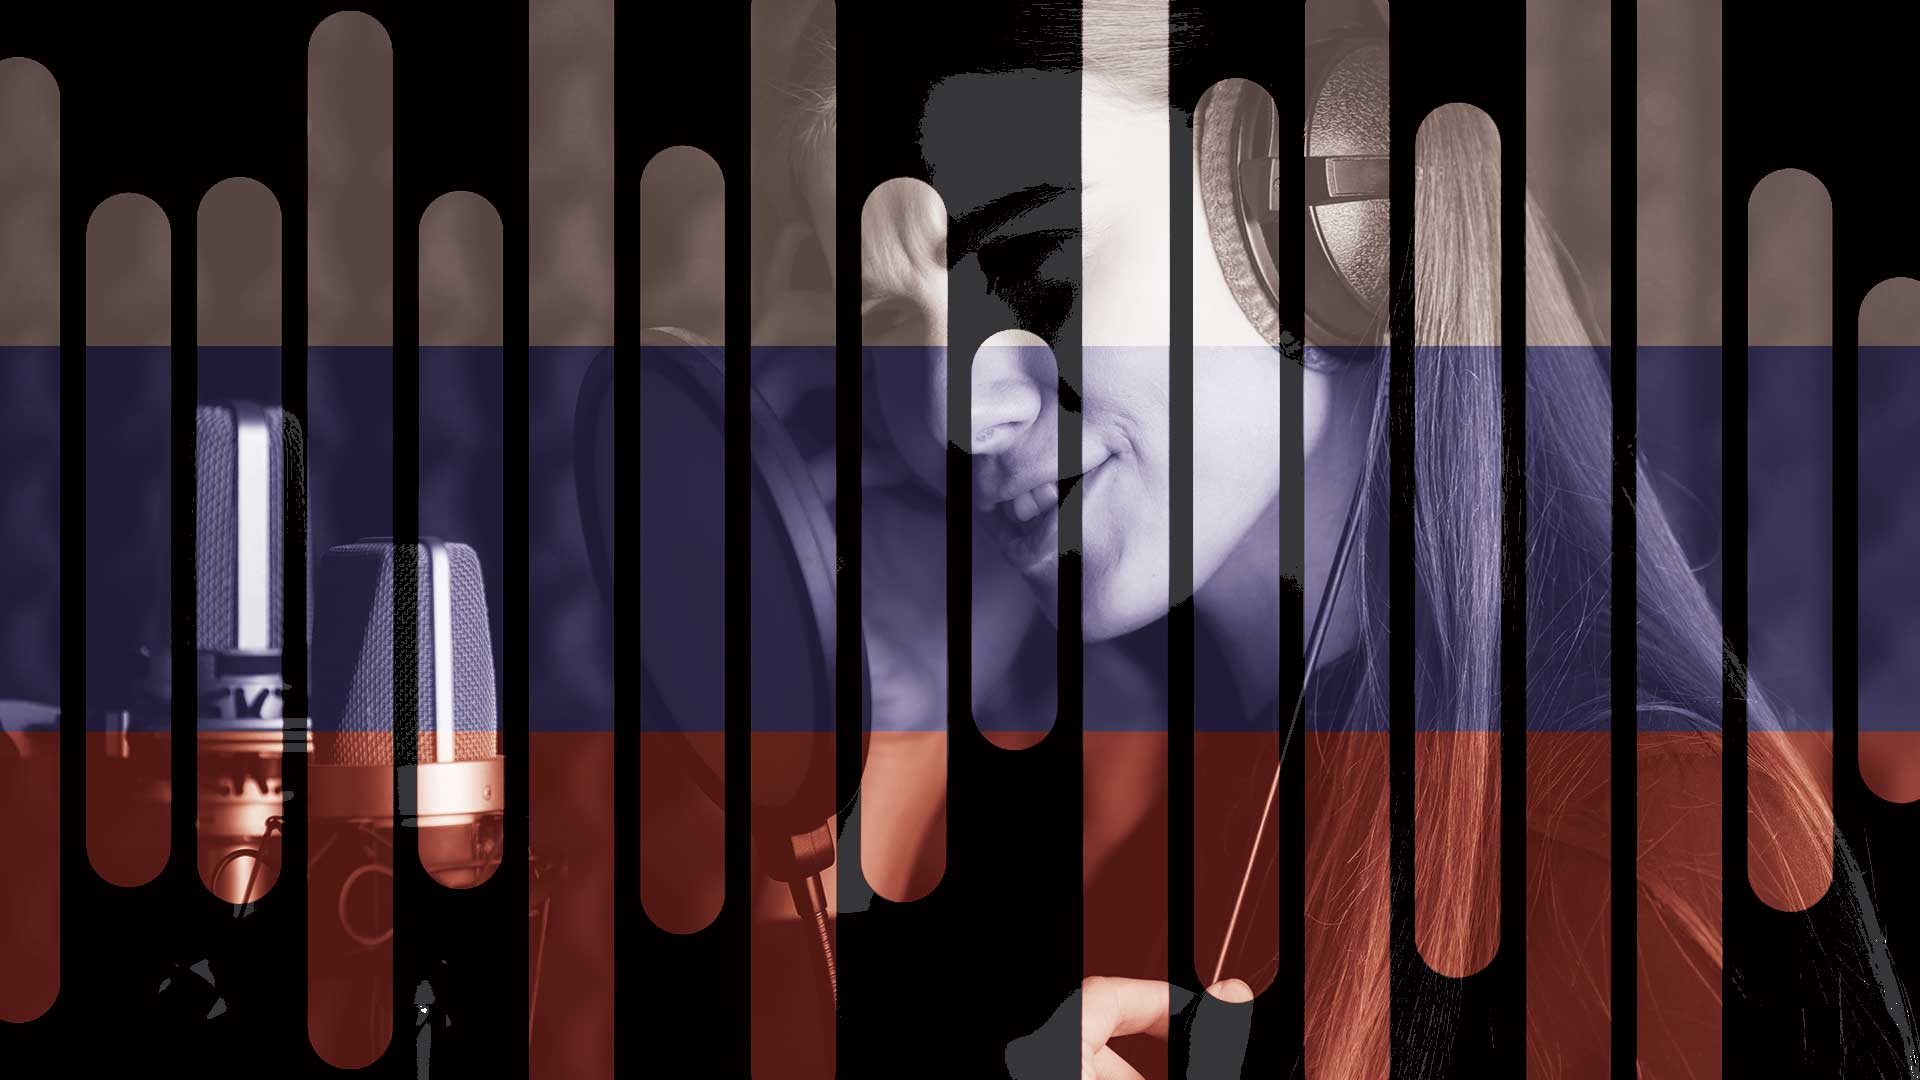 Voice-Over Services Russia - Voquent